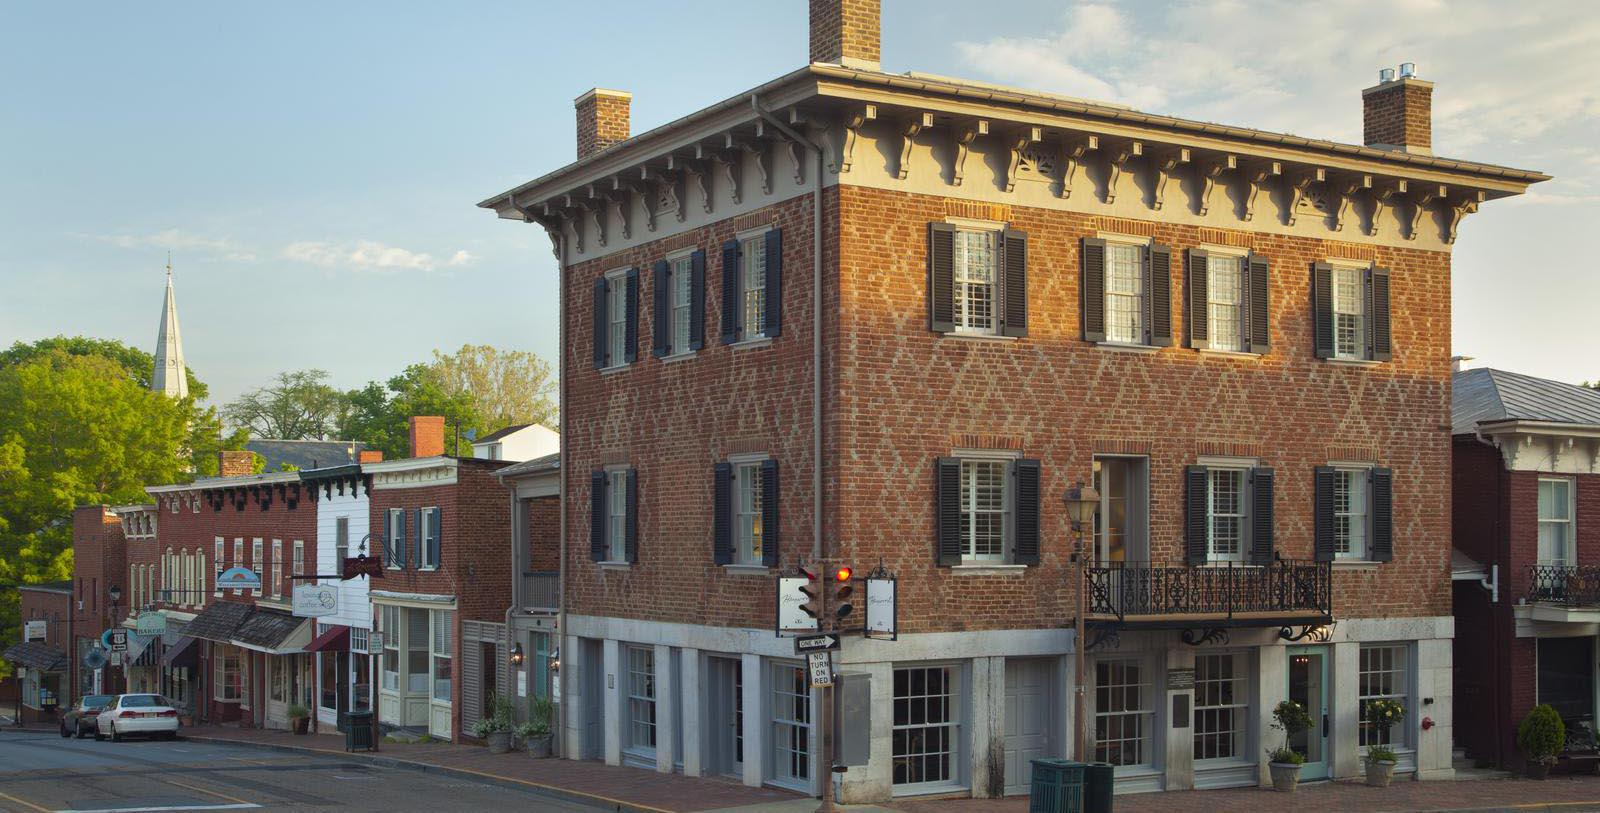 Image of Entrance The Georges, 1789, Member of Historic Hotels of America, in Lexington, Virginia, Special Offers, Discounted Rates, Families, Romantic Escape, Honeymoons, Anniversaries, Reunions